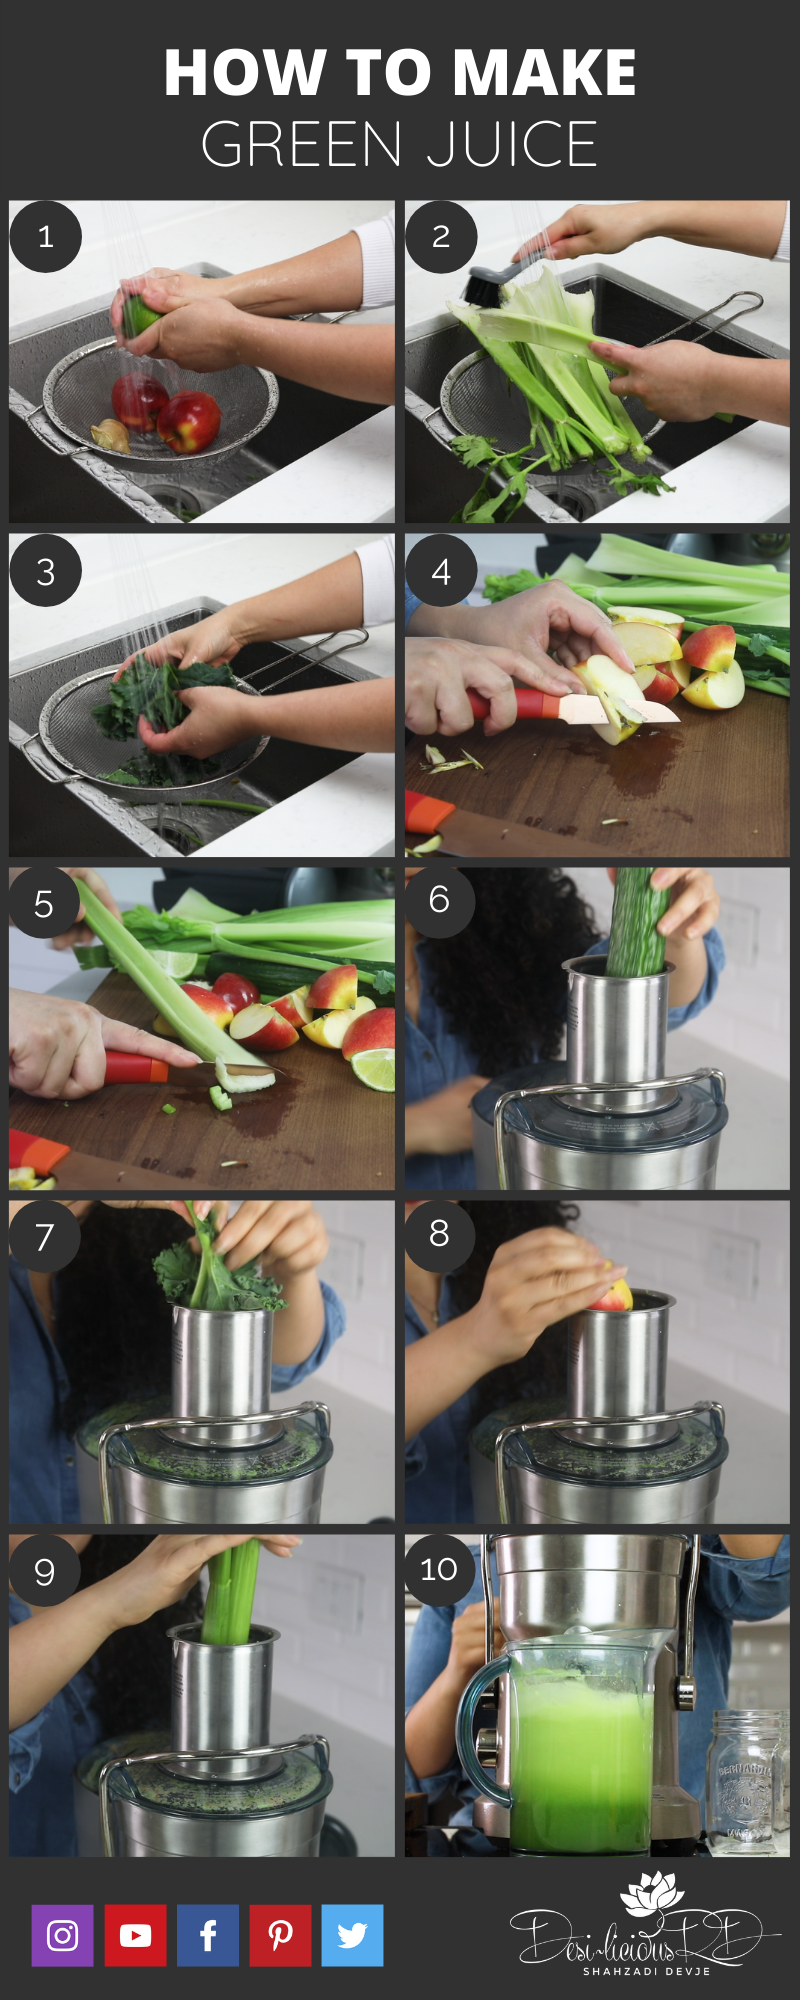 step by by step preparation shots of how to make a green juice in a juicer at home